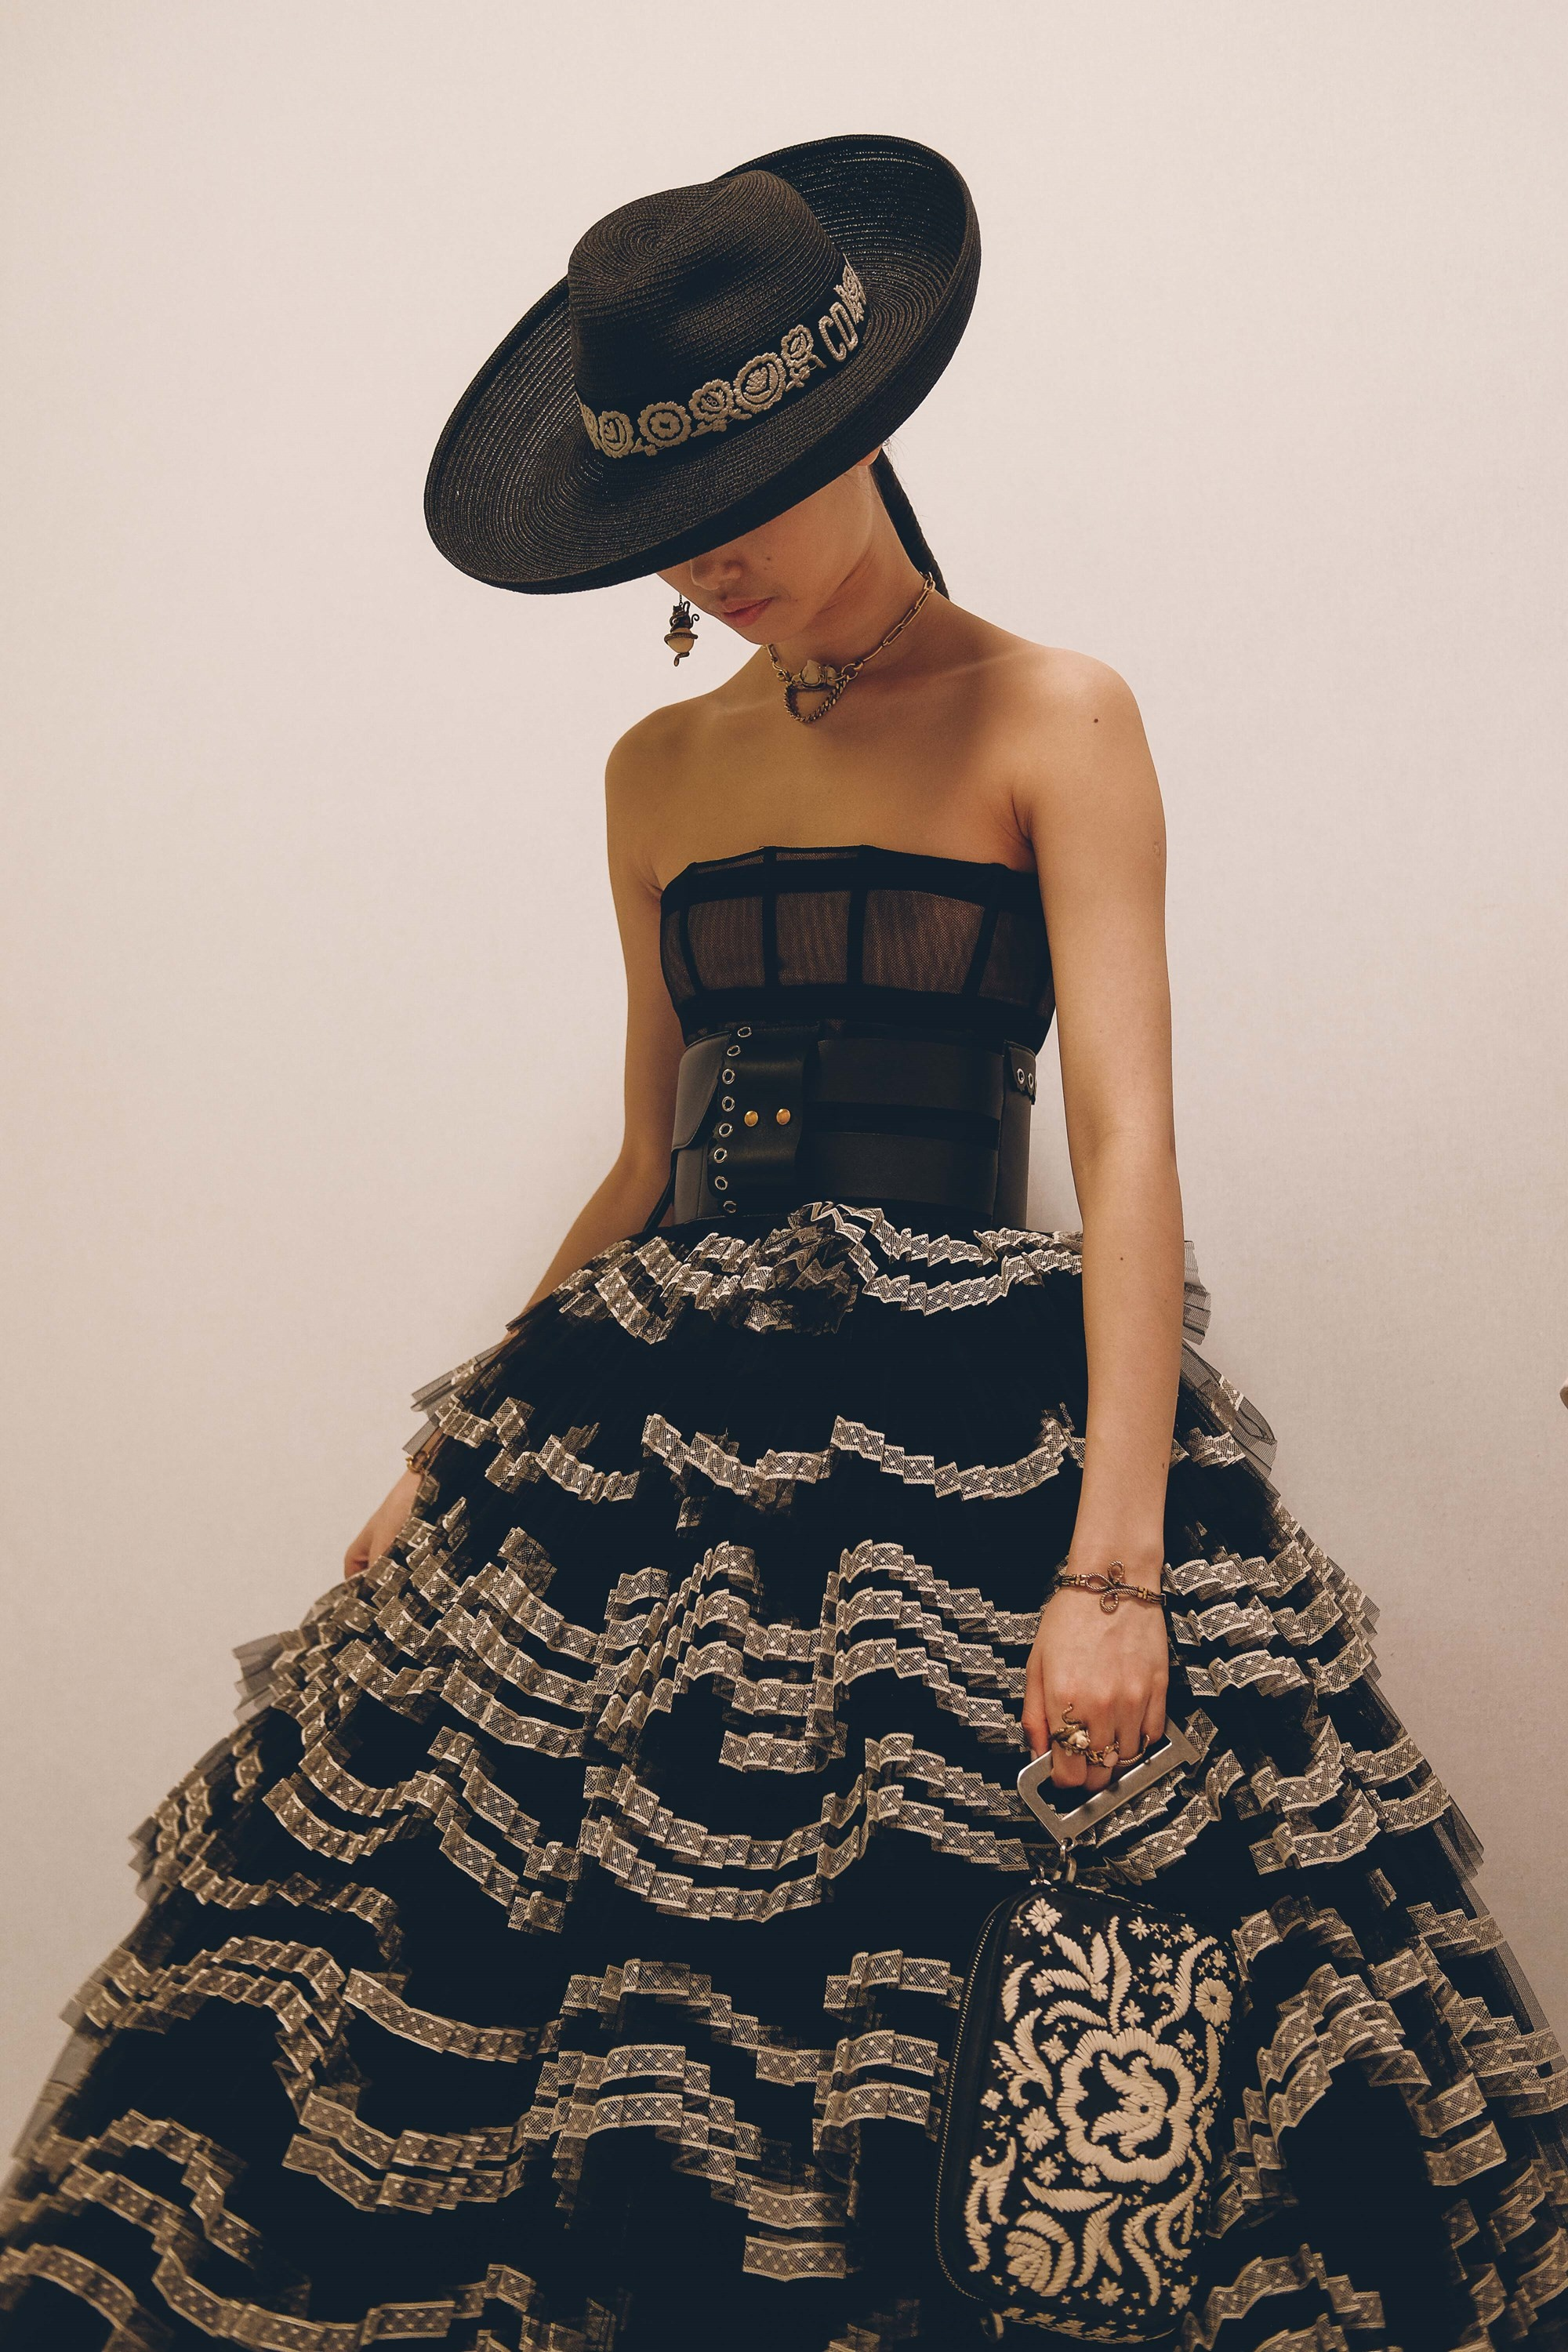 4012742c73b The Diorodeo: Horses, Corsets and Female Liberation at Dior Cruise | AnOther